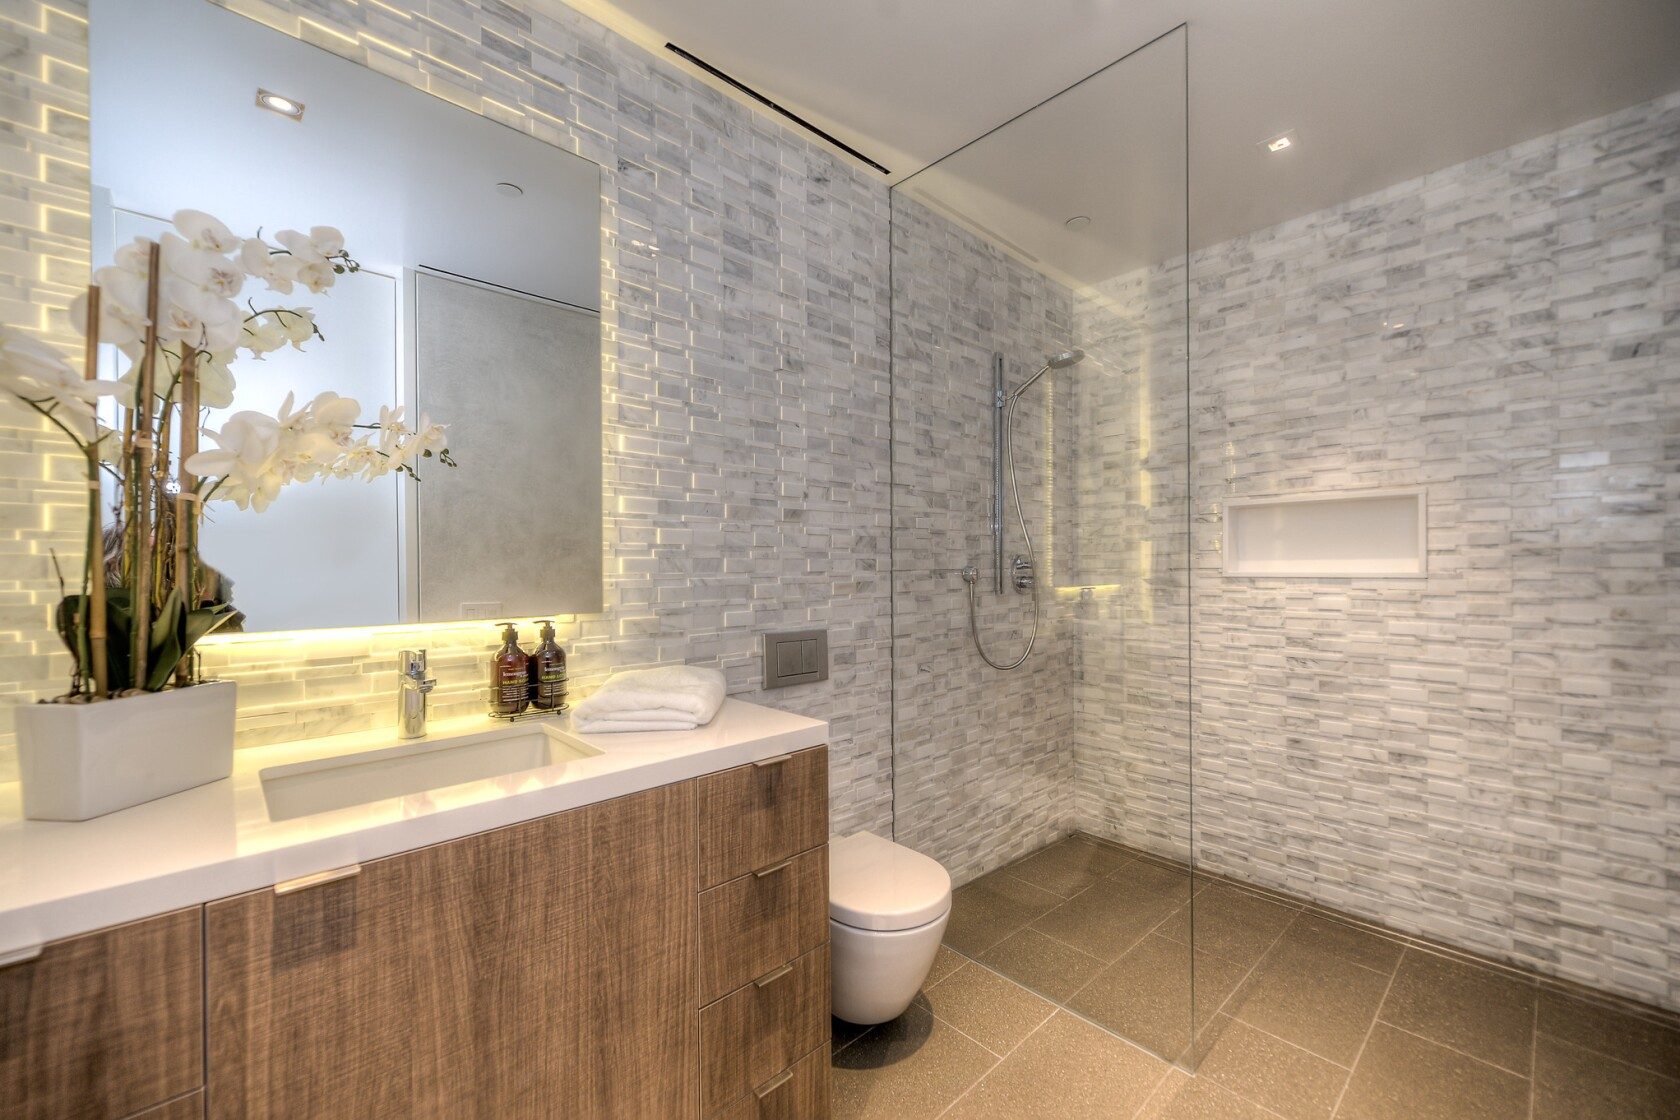 Jaw-dropping bathrooms: Lather, rinse and repeat in style